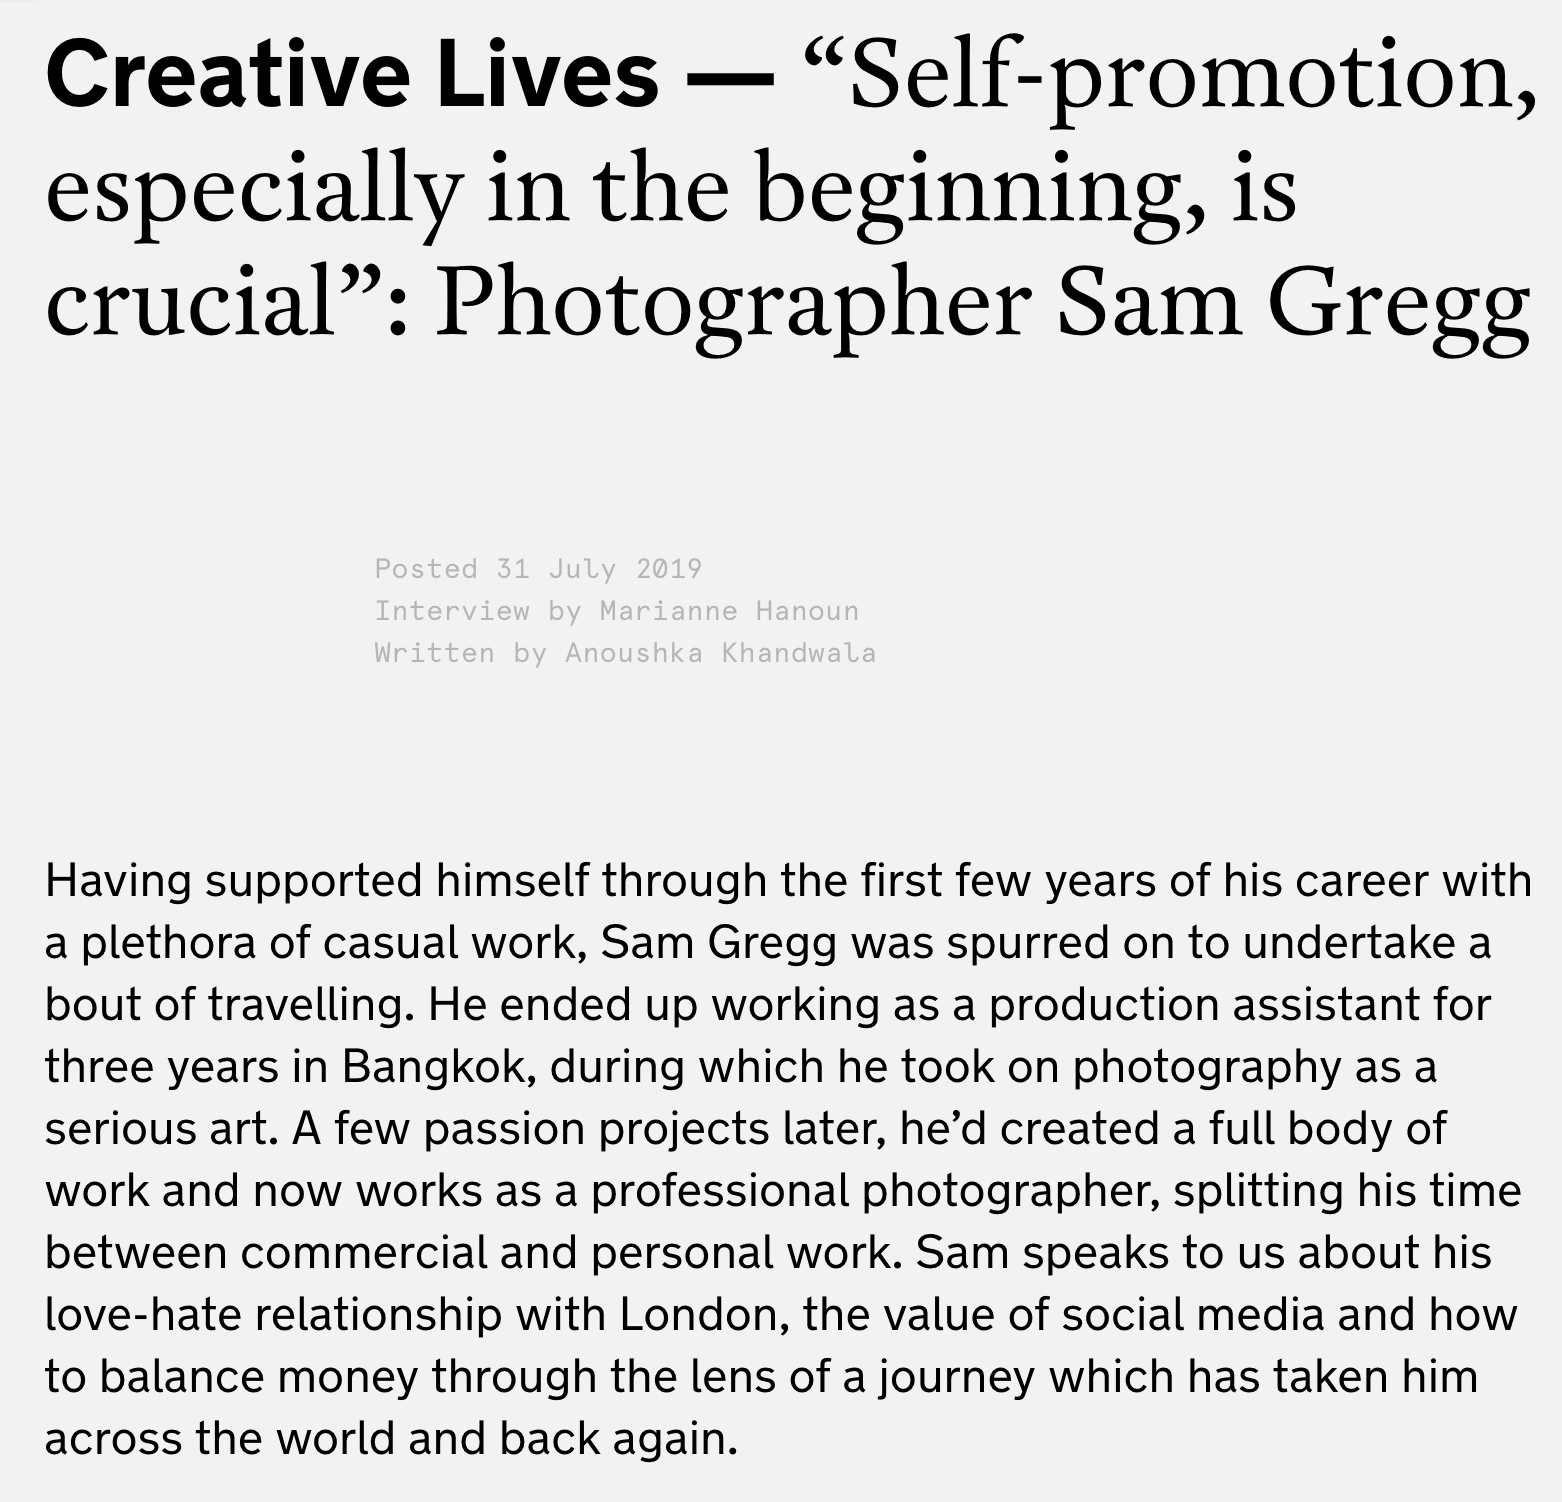 lecture-in-progress-sam-gregg-photography.jpeg